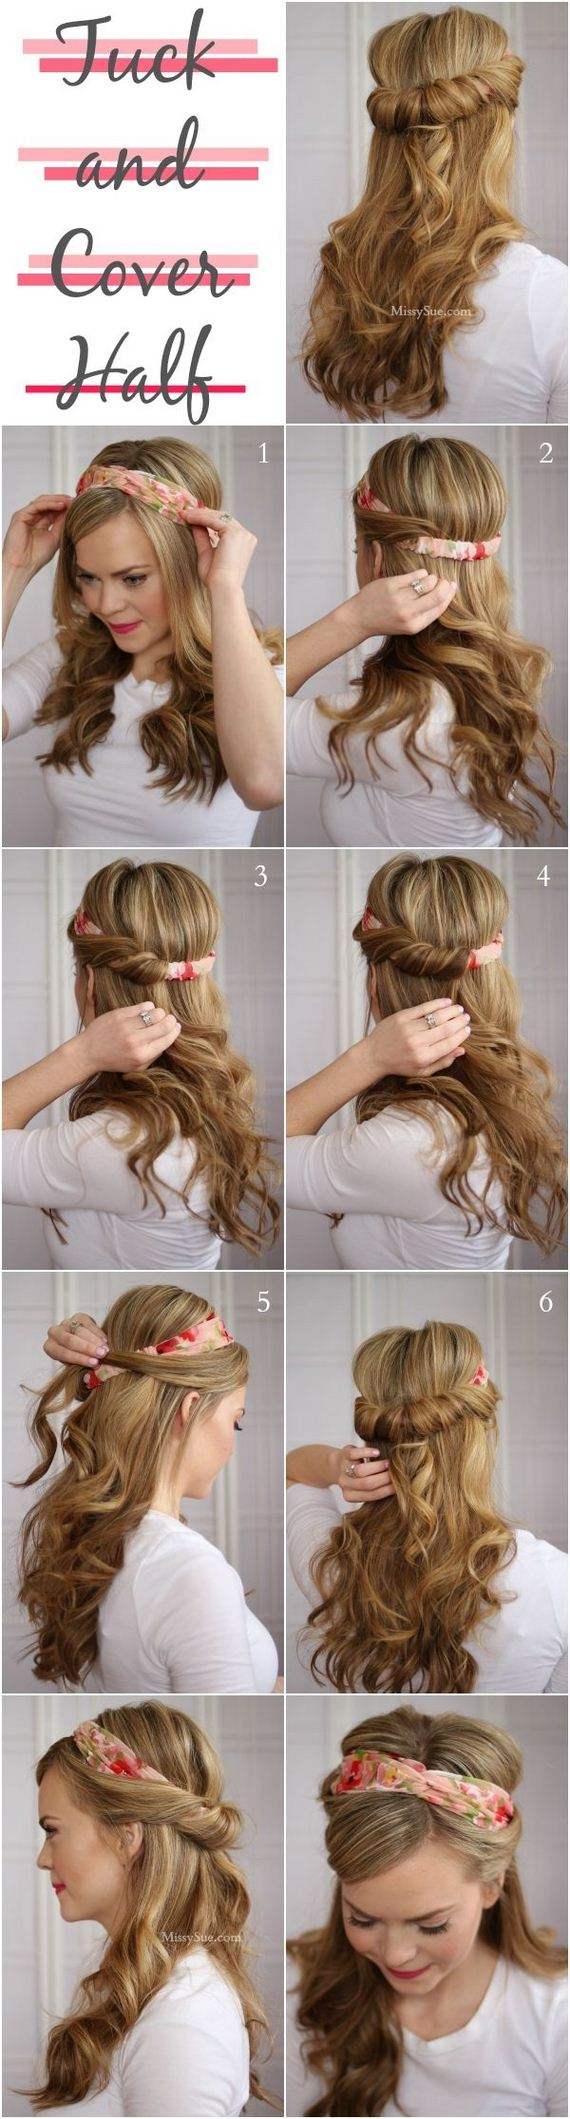 16-Easy-Hairstyles